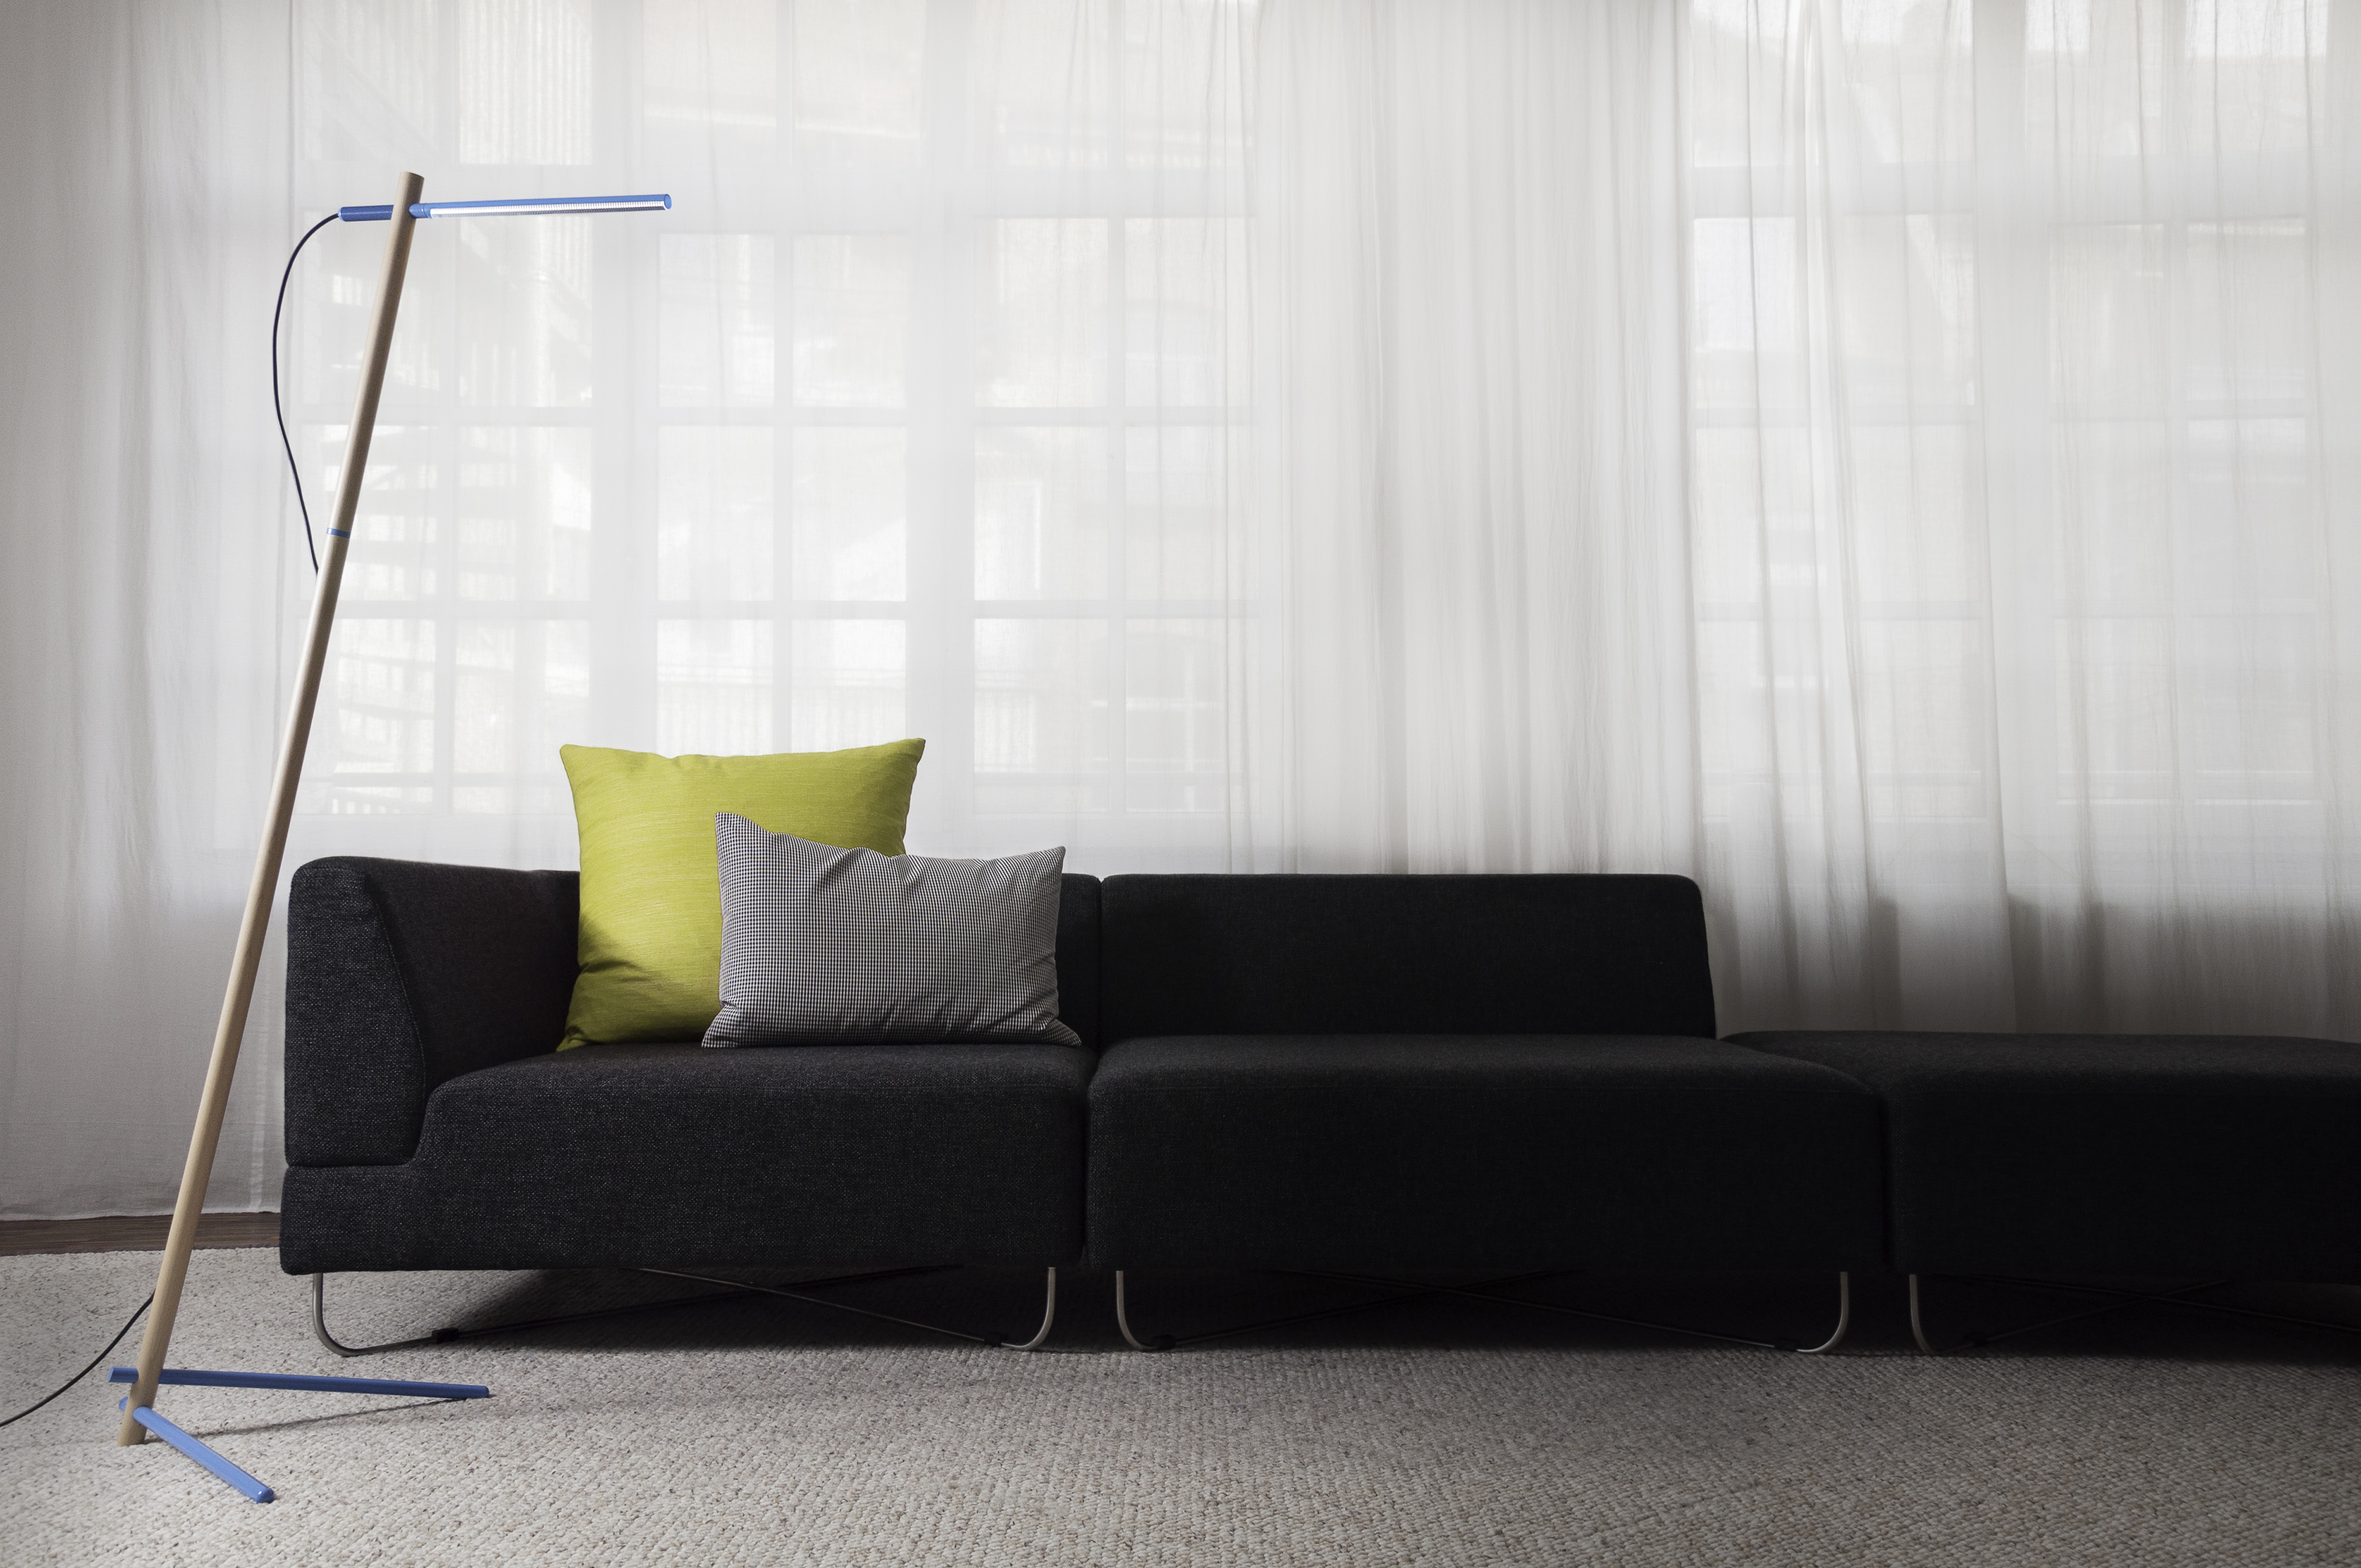 Best Color Temperature for Ambient Lighting | Lighting & Decor Mag